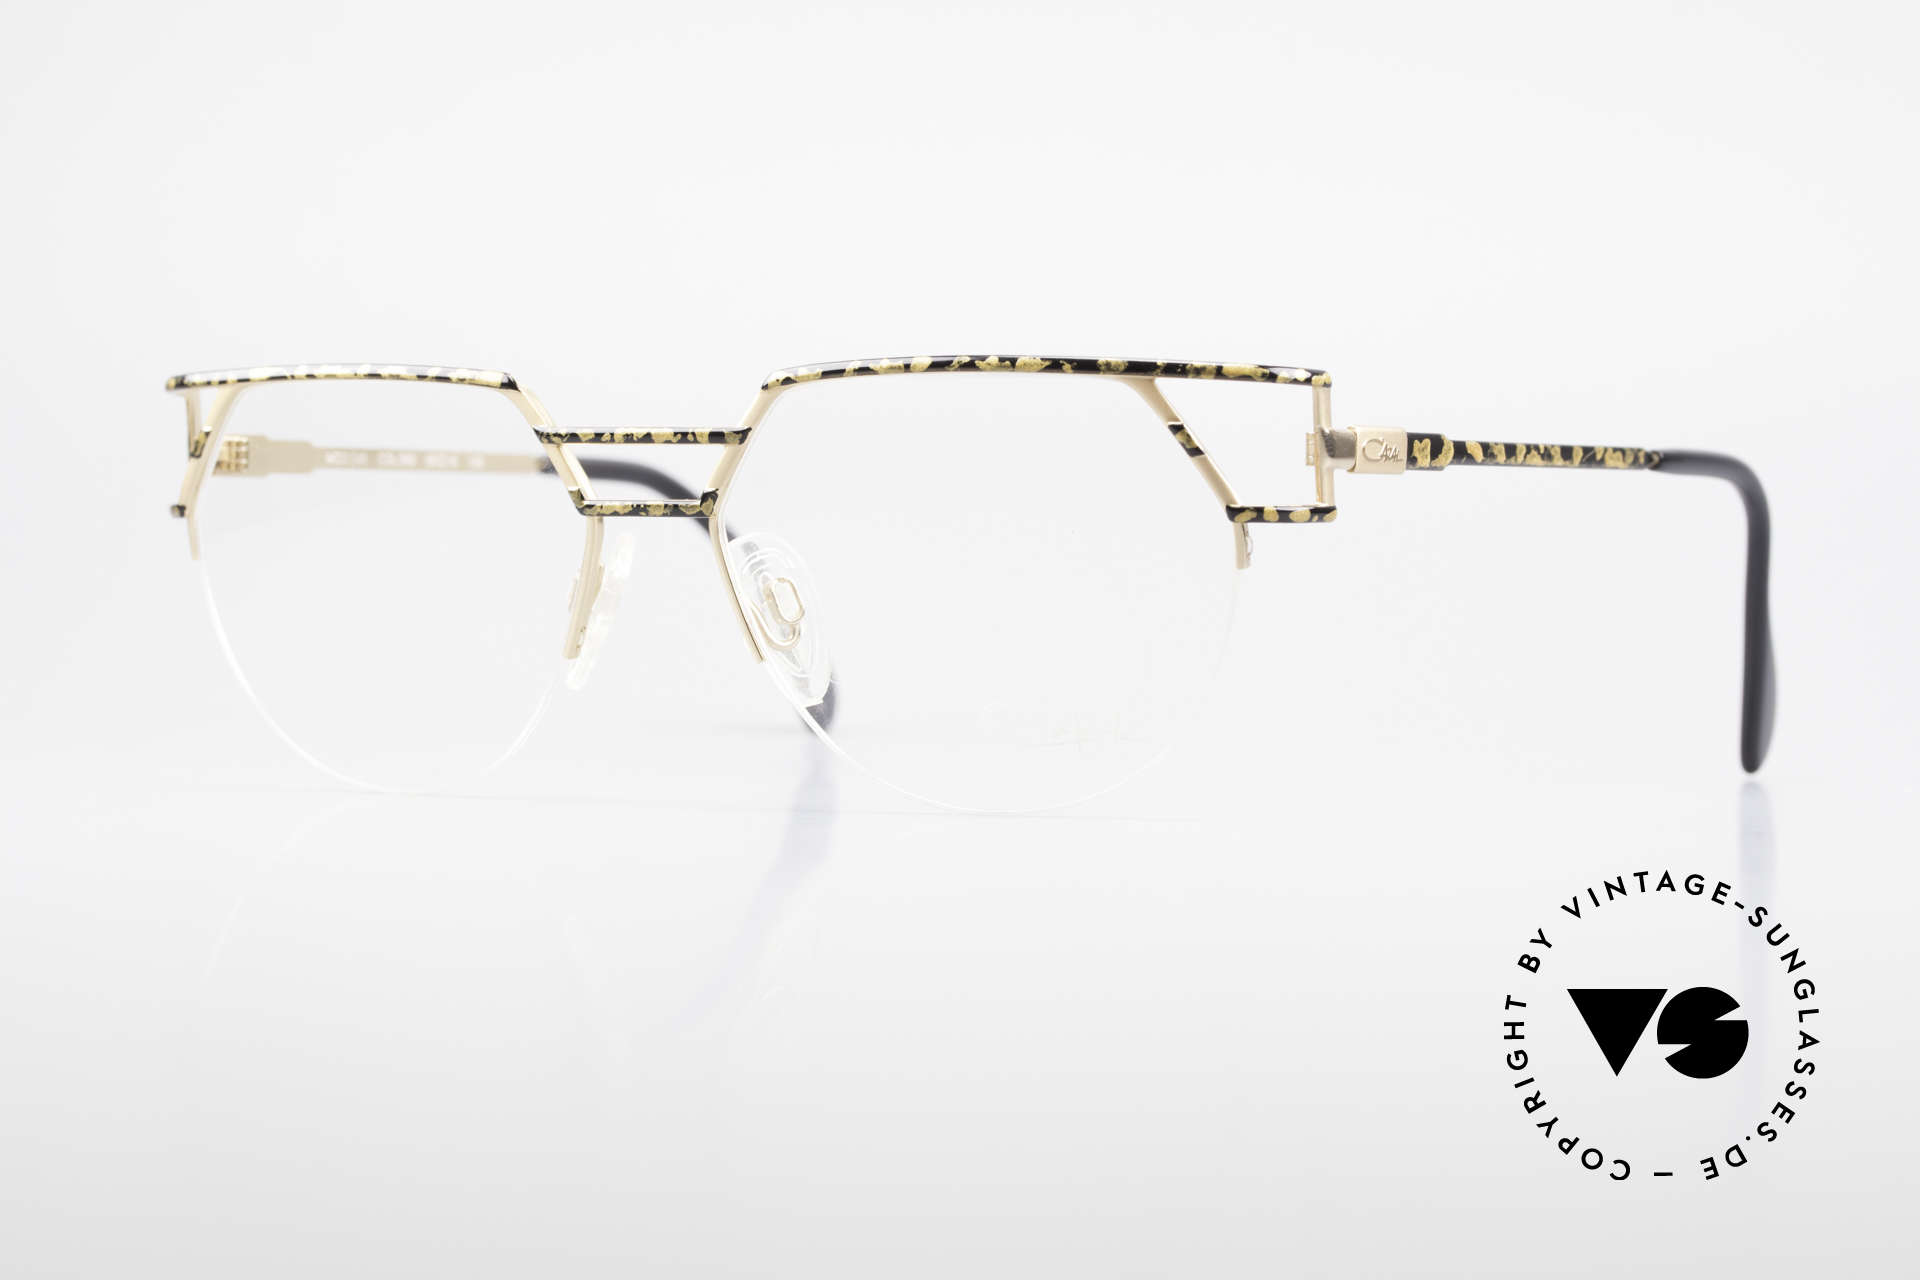 Cazal 248 Original 90's Frame No Retro, distinctive CAZAL eyeglasses of the early 1990's, Made for Men and Women